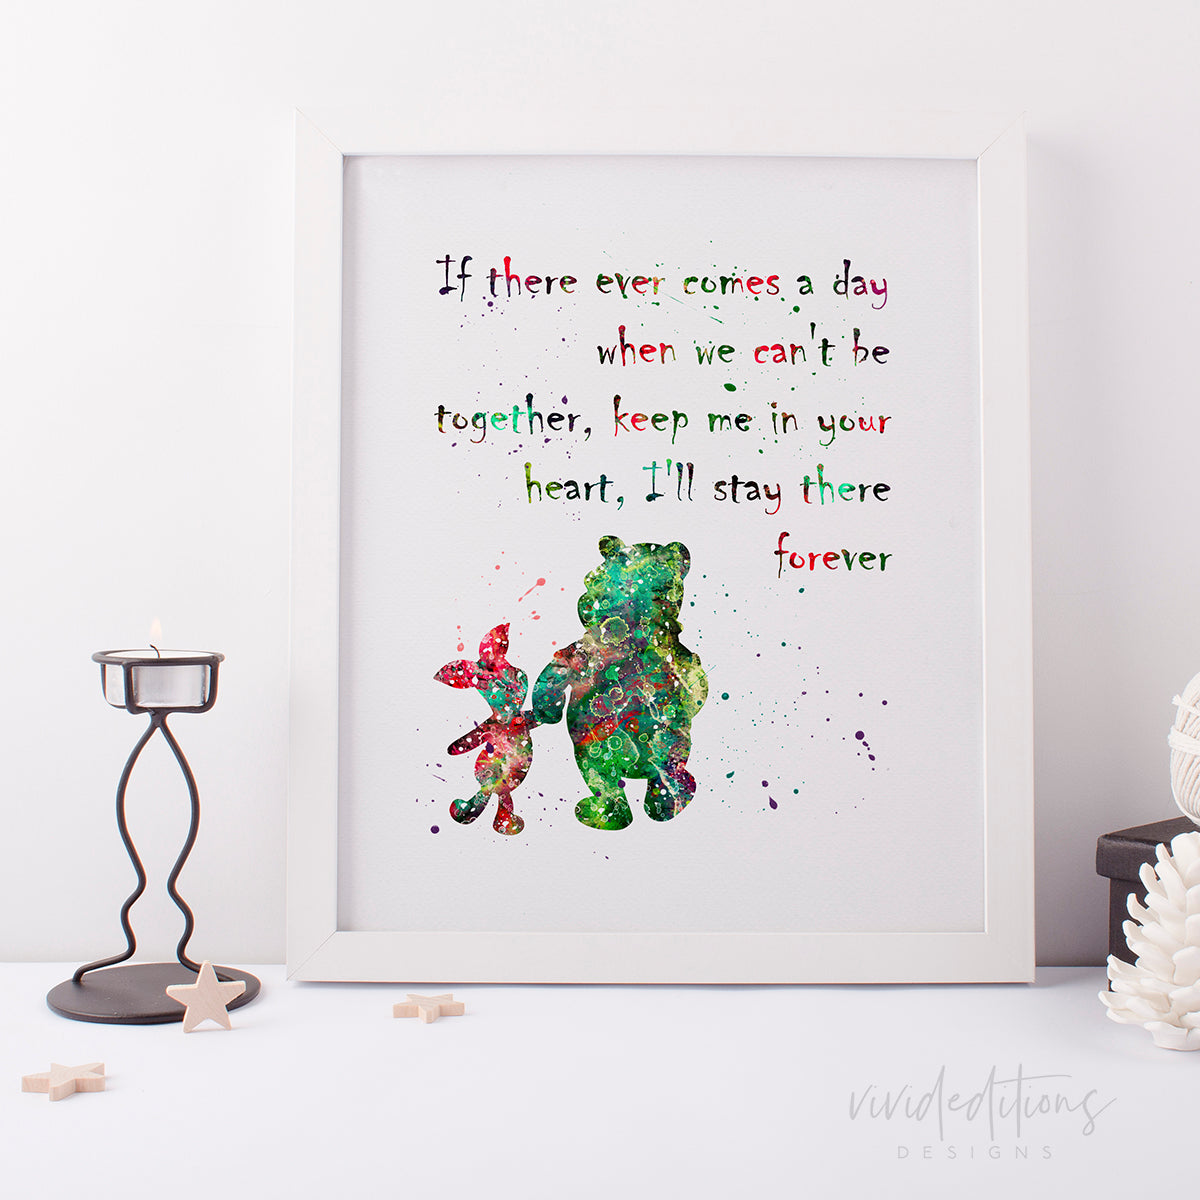 Winnie the Pooh Quote 2 Watercolor Art Print Art Print - VIVIDEDITIONS